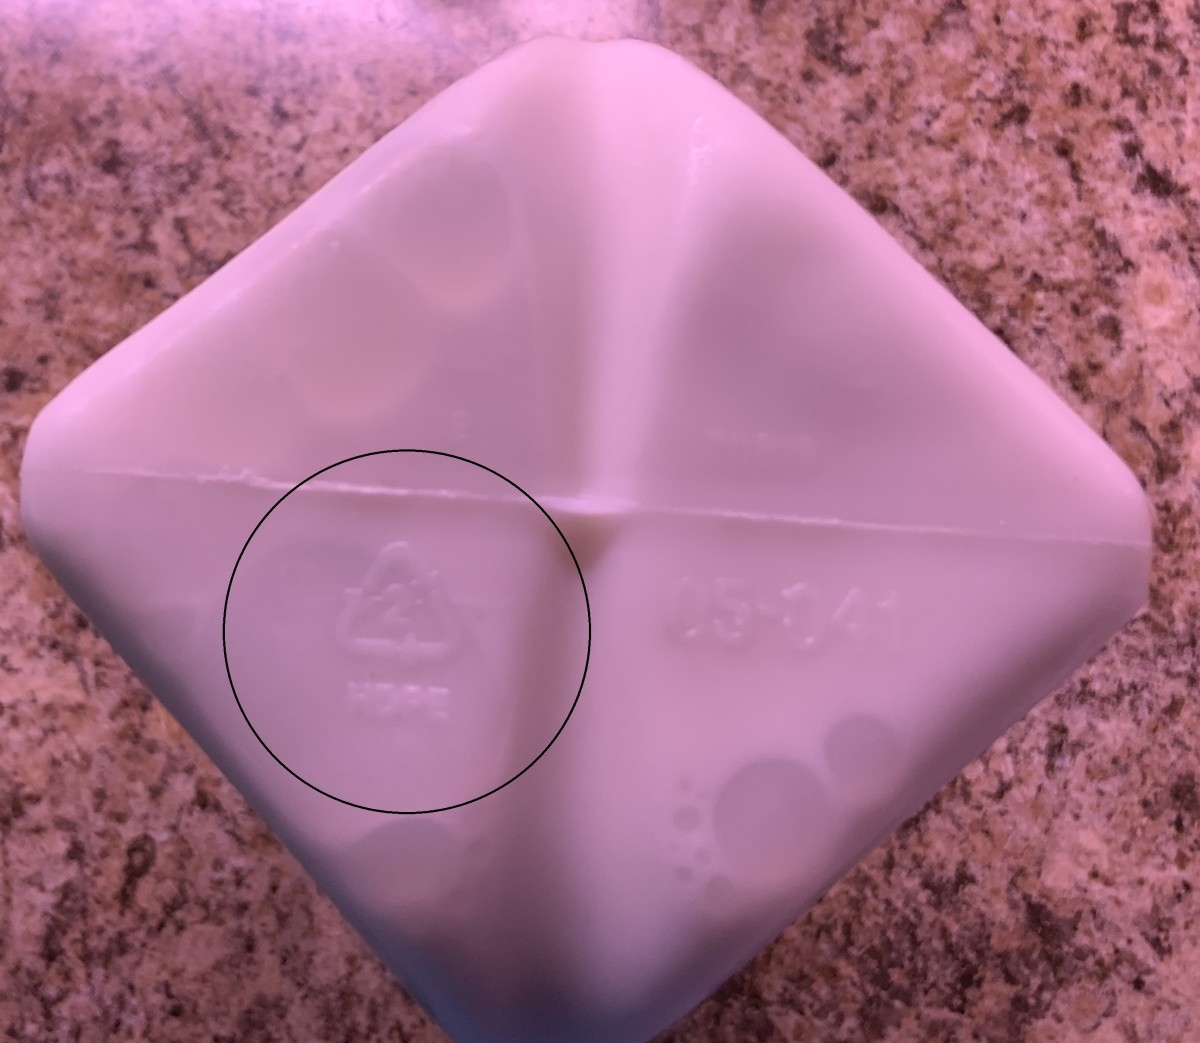 """Bottom of a half gallon of milk that has a """"2"""" inside a triangle with """"HDPE"""" next to the triangle. This is recyclable High density polyethylene plastic."""